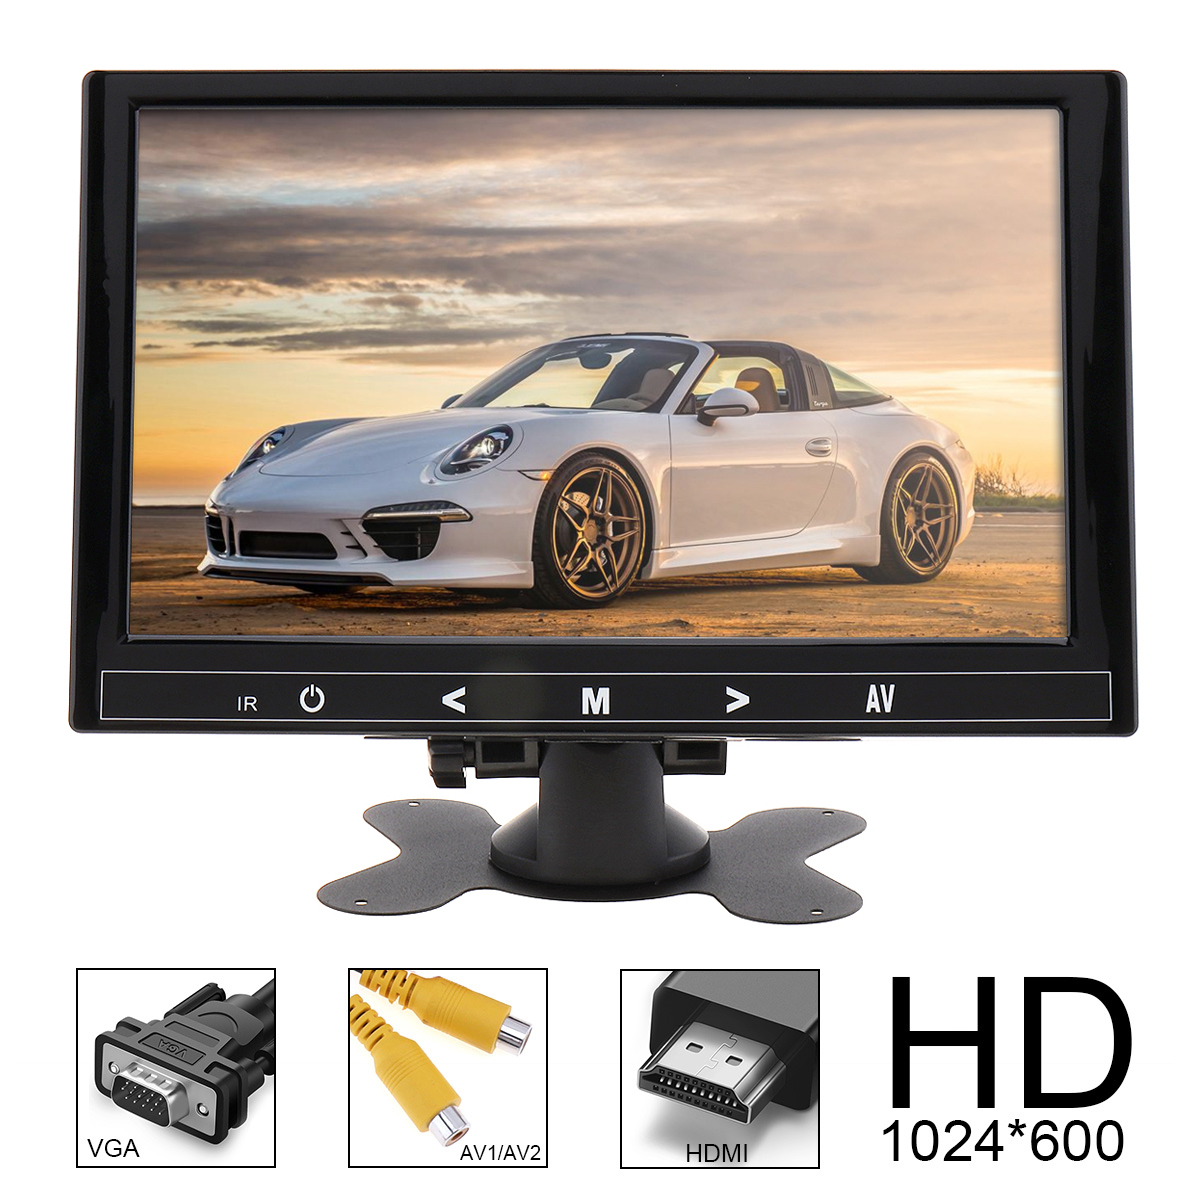 9 Inch 16:9 HD 1024*600 TFT LCD Color Car Rear View Monitor 2 Video Input DVD VCD Headrest Vehicle Monitor Audio Video HDMI VGA купить в Москве 2019